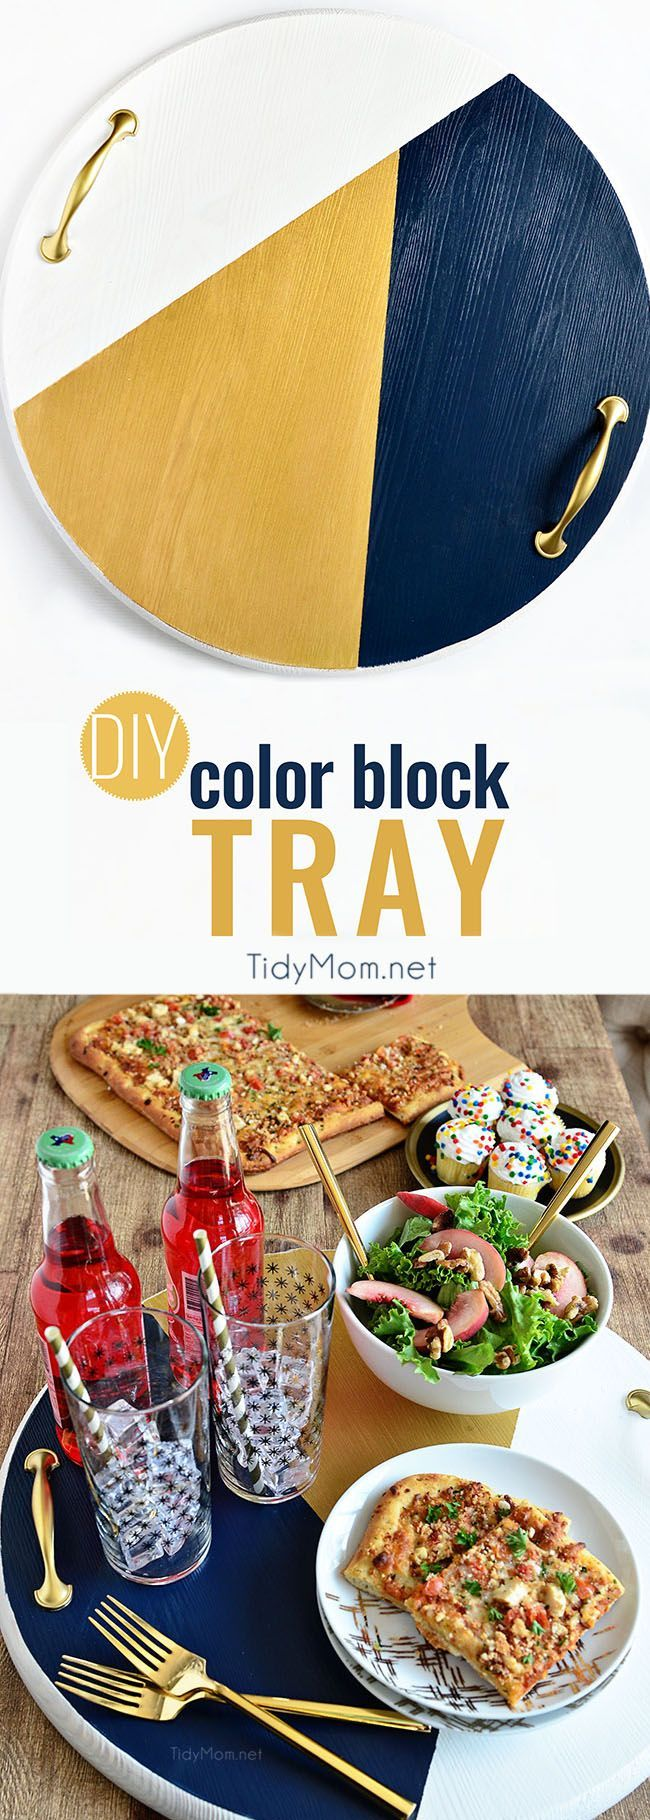 A bold colorful tray is the perfect way to add a pop of color to a space and use it as a serving tray when entertaining. The color blocking gives this tray a modern look while the touch of gold adds a little elegance! Get the full tutorial to make your ow